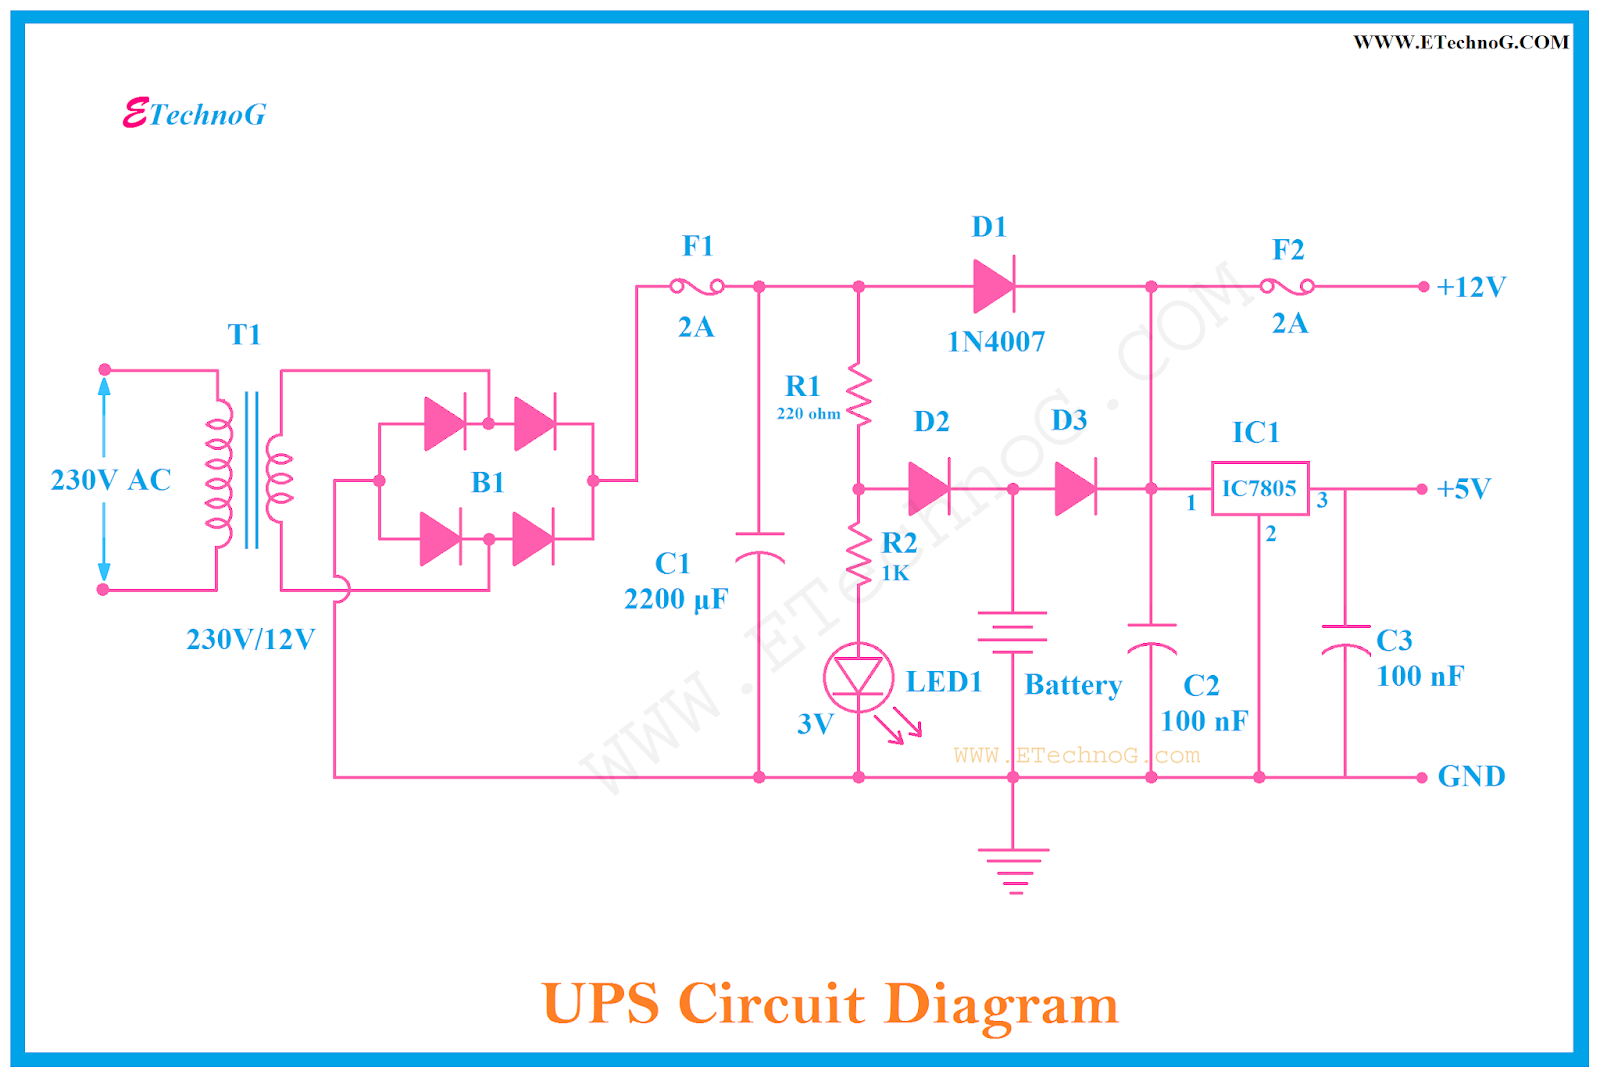 hight resolution of circuit diagram of ups ups circuit diagram for home made